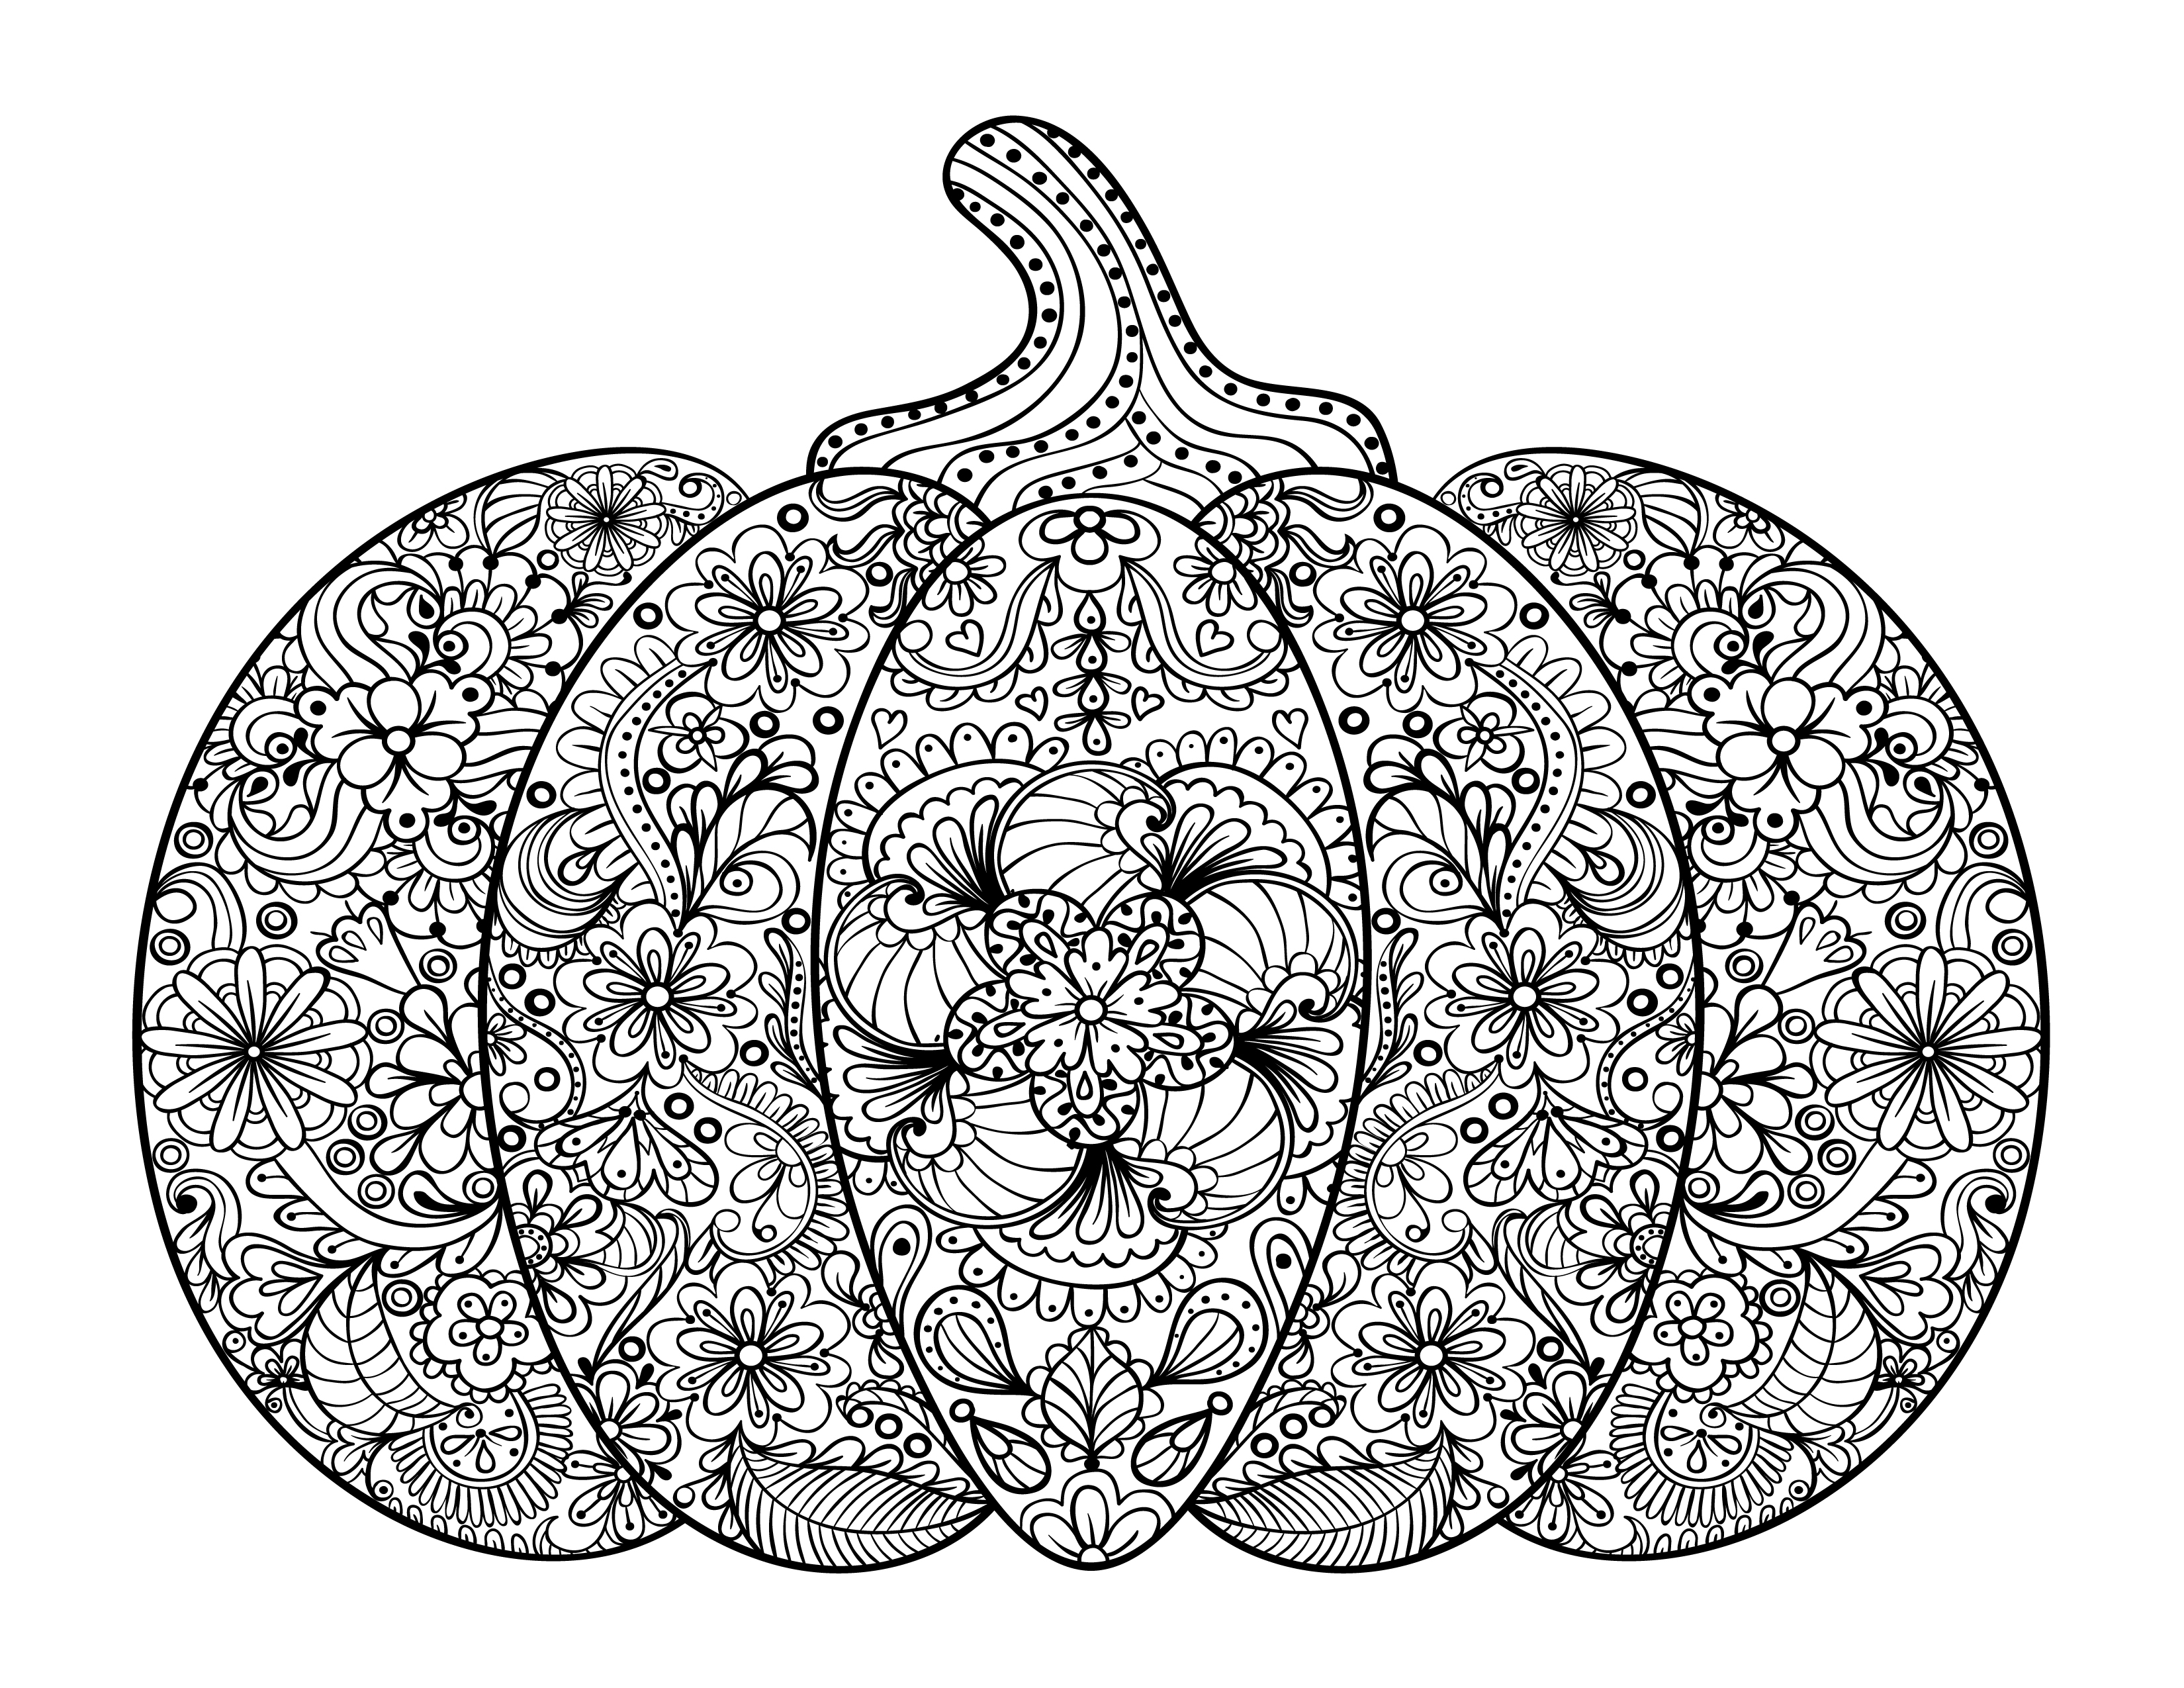 free coloring pages for adults printable 20 gorgeous free printable adult coloring pages page 3 coloring printable pages free adults for